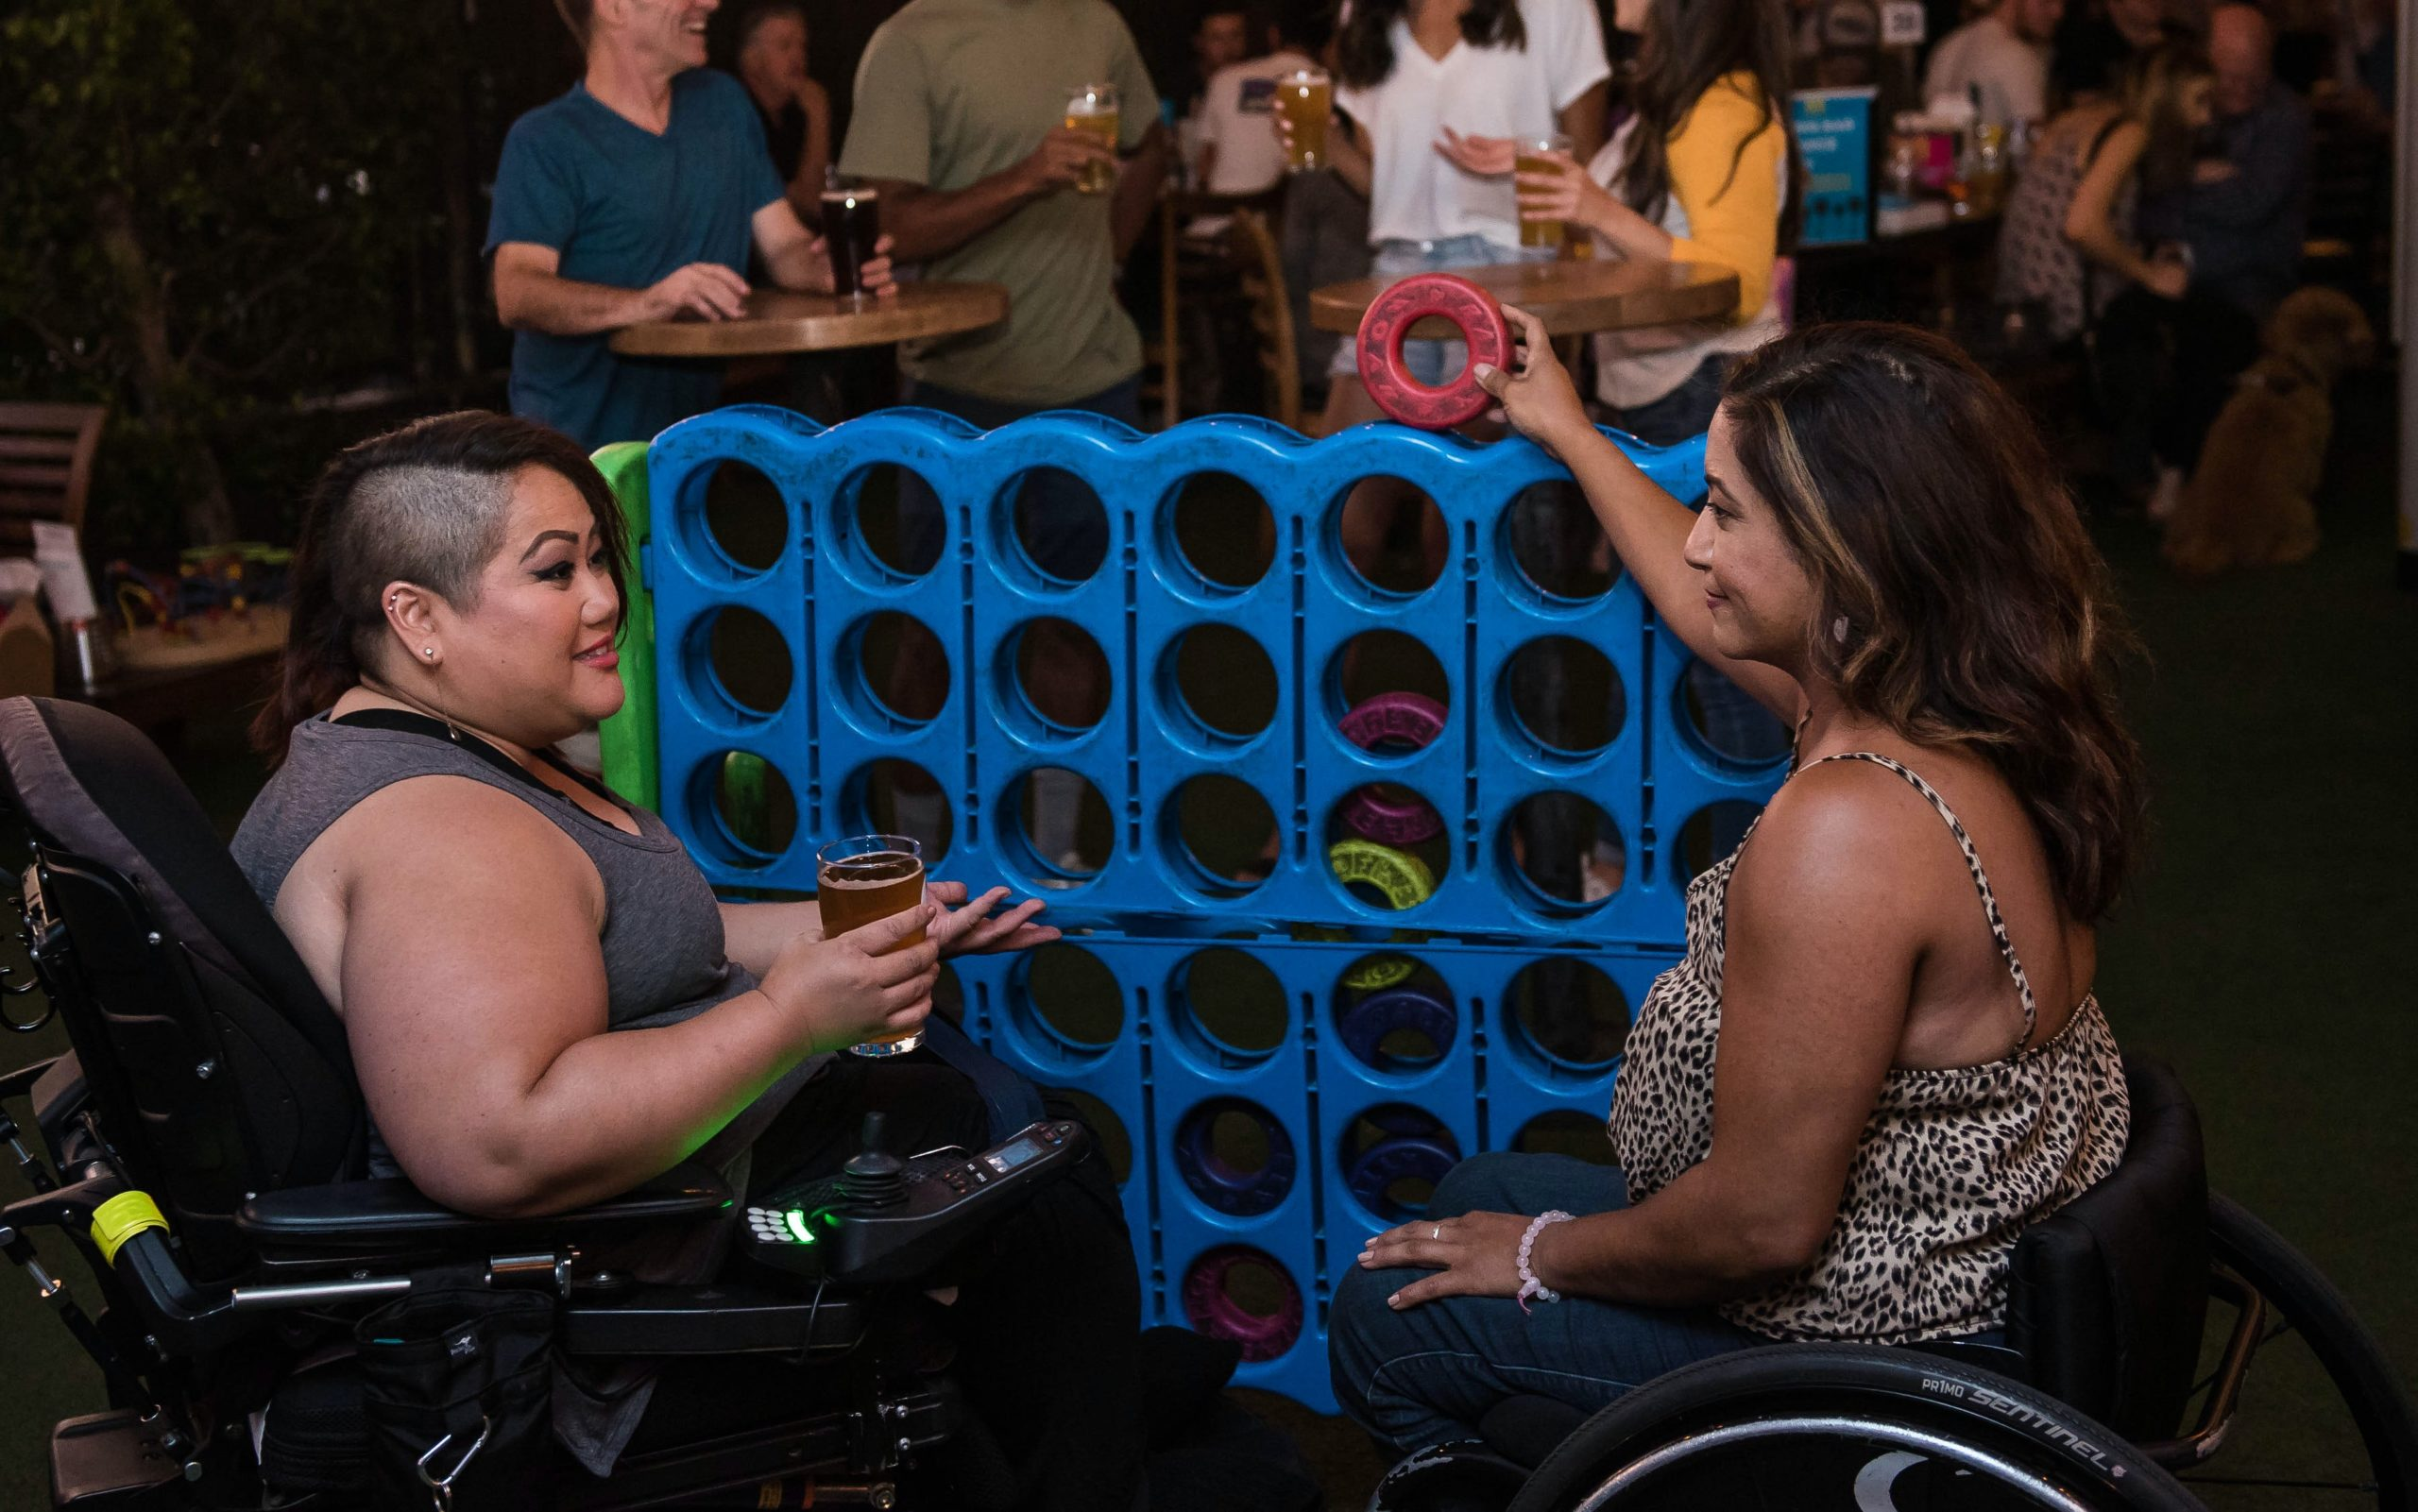 Two people with tan skin each sit in their wheelchairs, talking casually. One holds a glass of beer and the other holds a ring over the large-sized game of connect four that